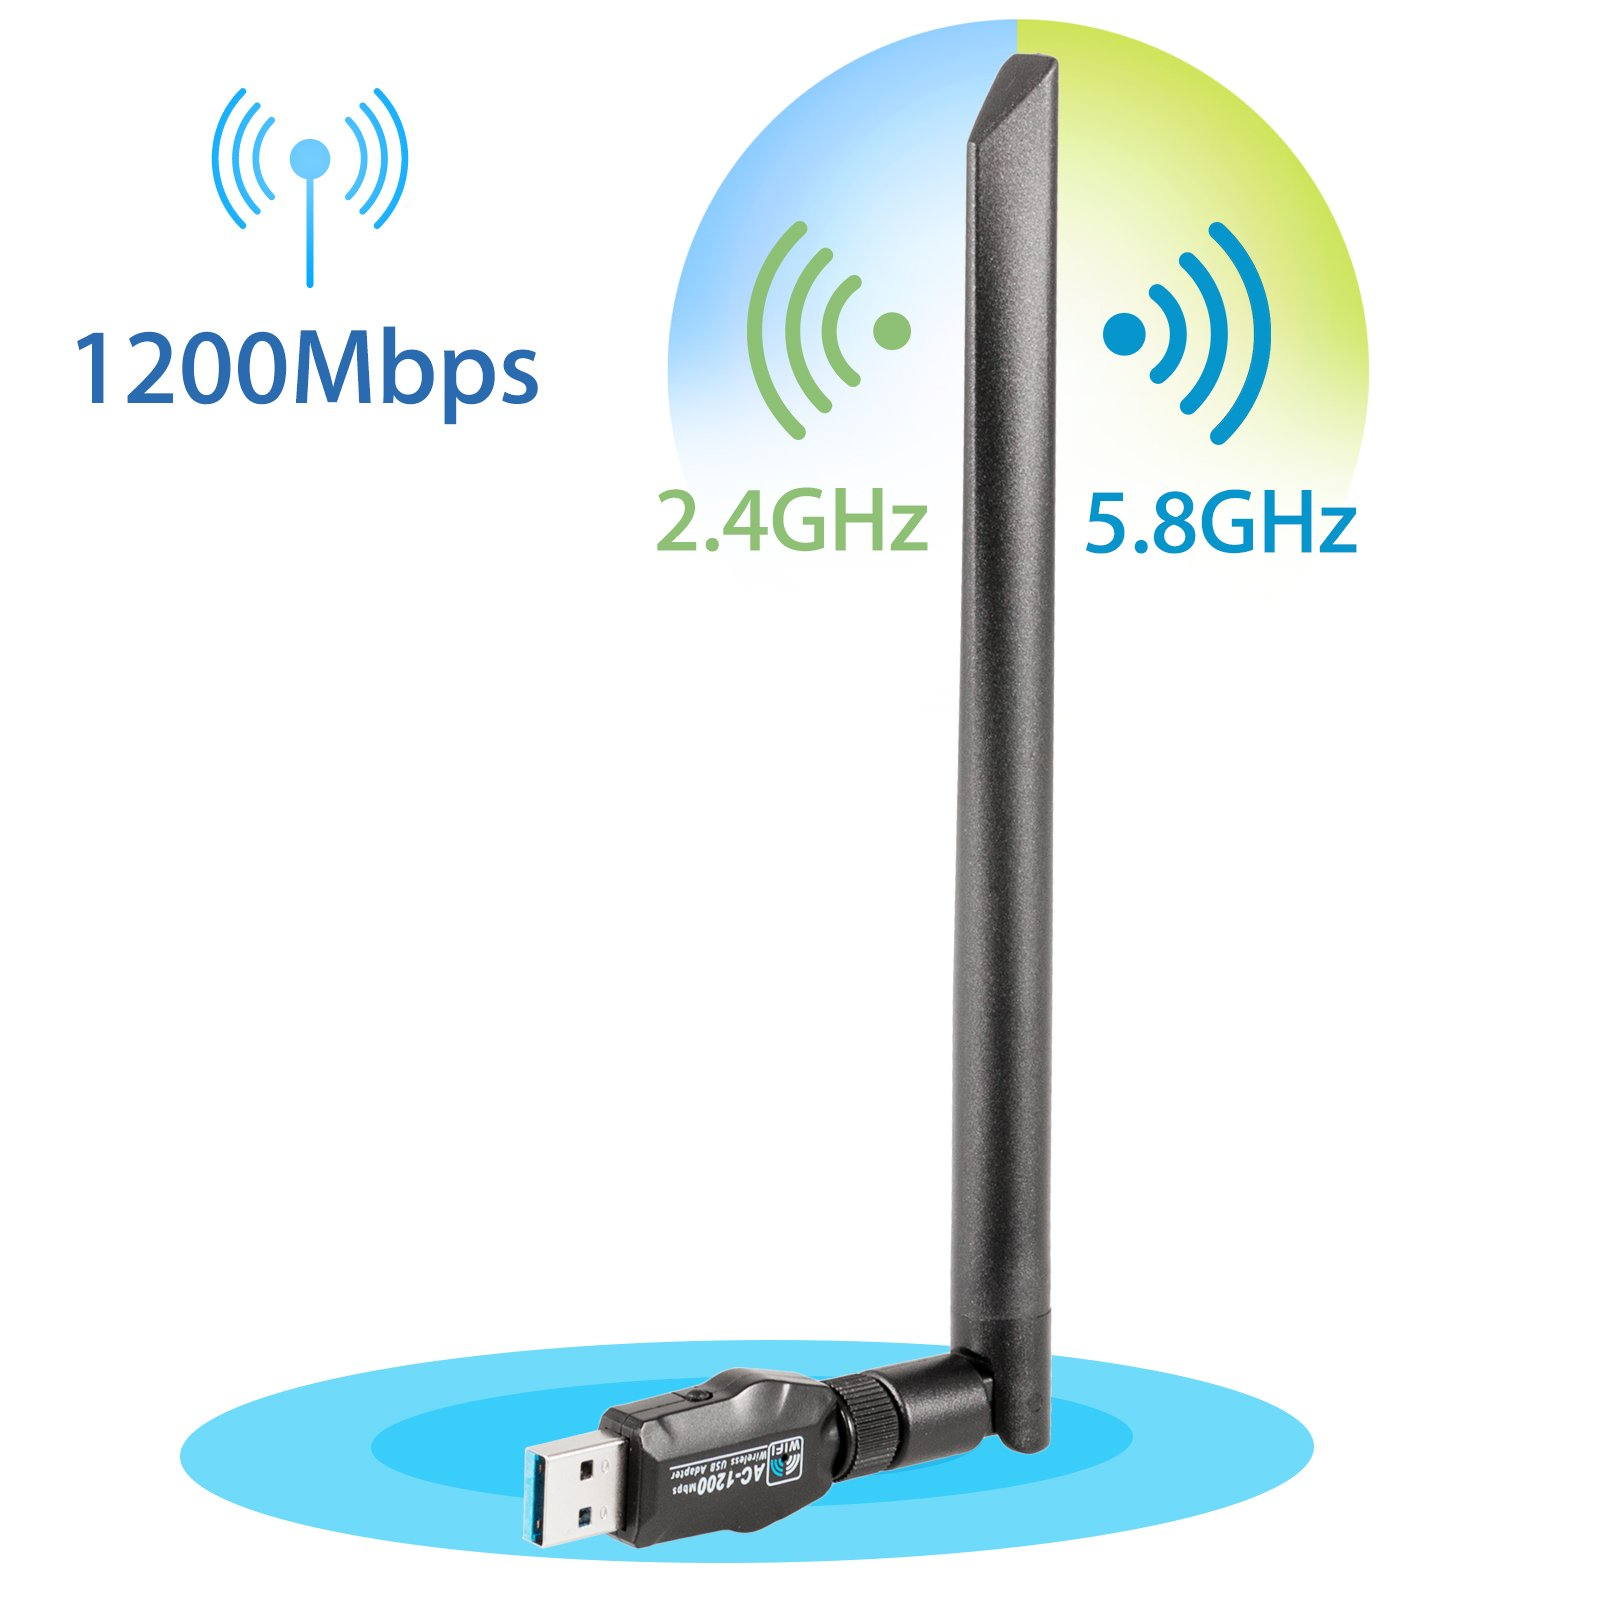 EEEKit USB 1200Mbps Wi-Fi Adapters/Dongles Dual Band 5dBi removable antenna 5.8GHz/802.11ac Super Speed USB 3.0 transmission support all WLAN routers: WPA/WPA2/WEP